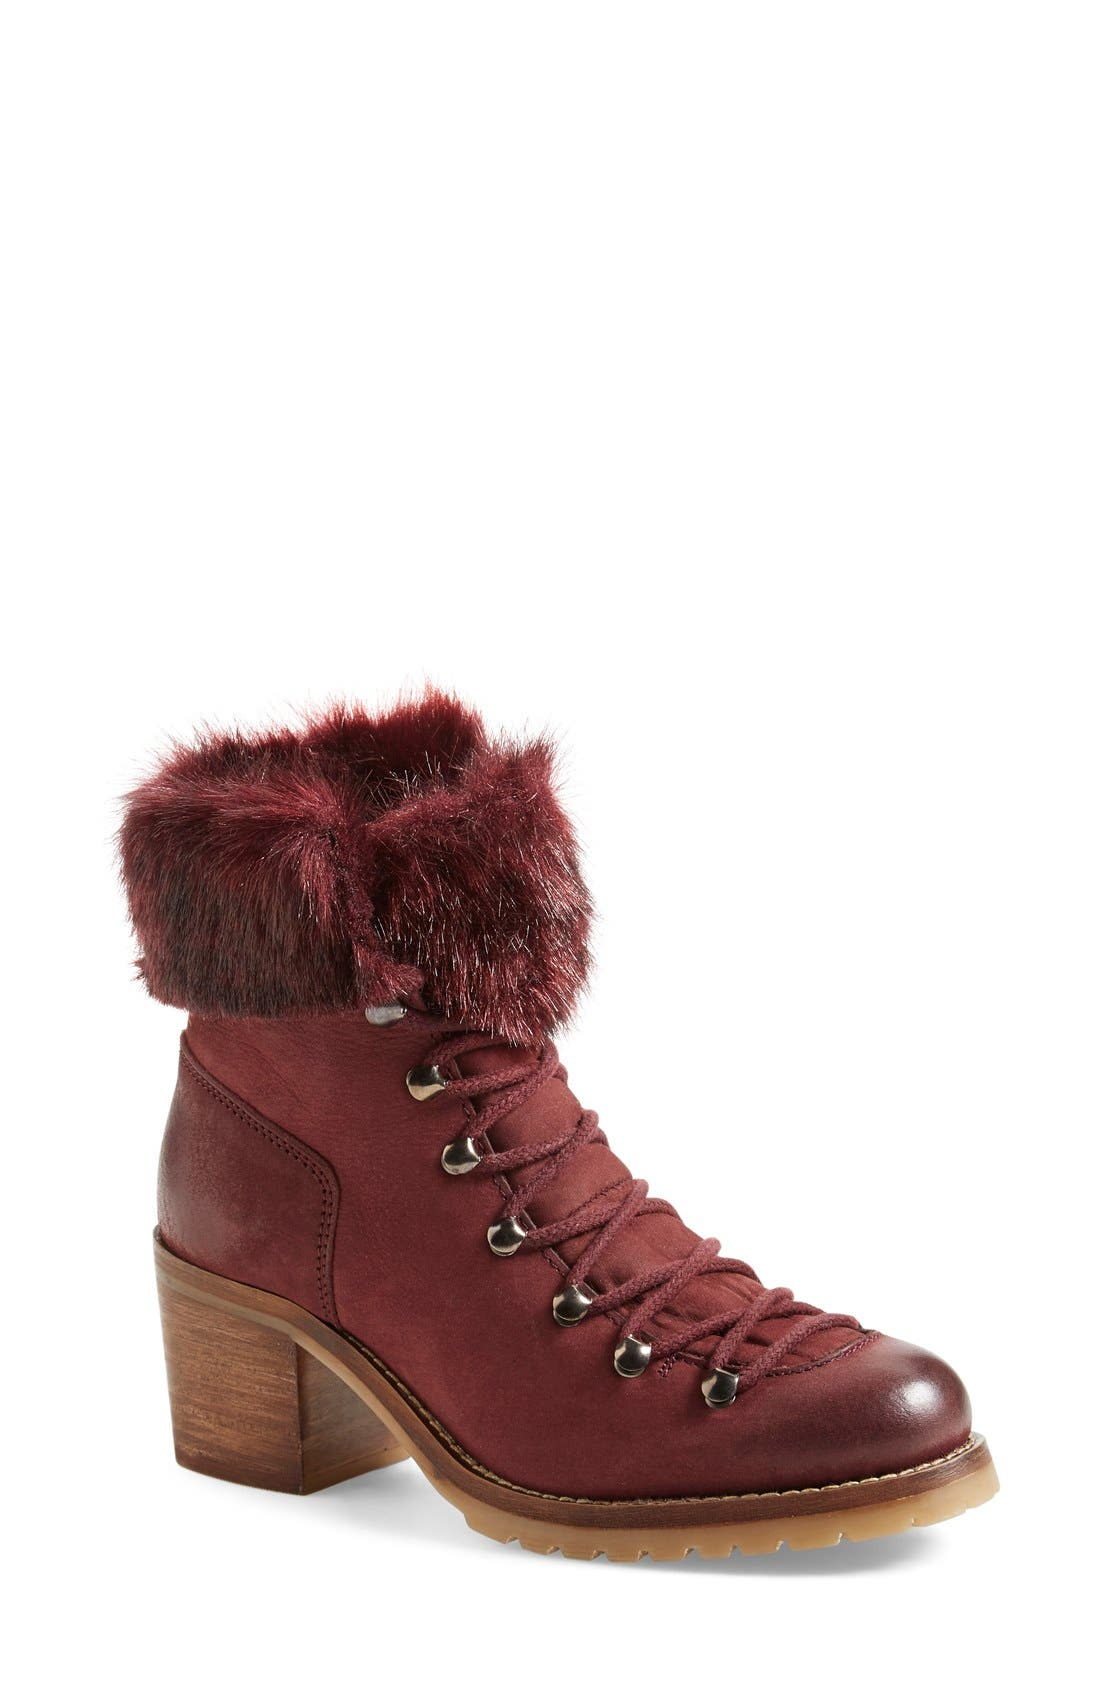 Main Image - Steve Madden 'Huck' Lace-Up Bootie (Women)